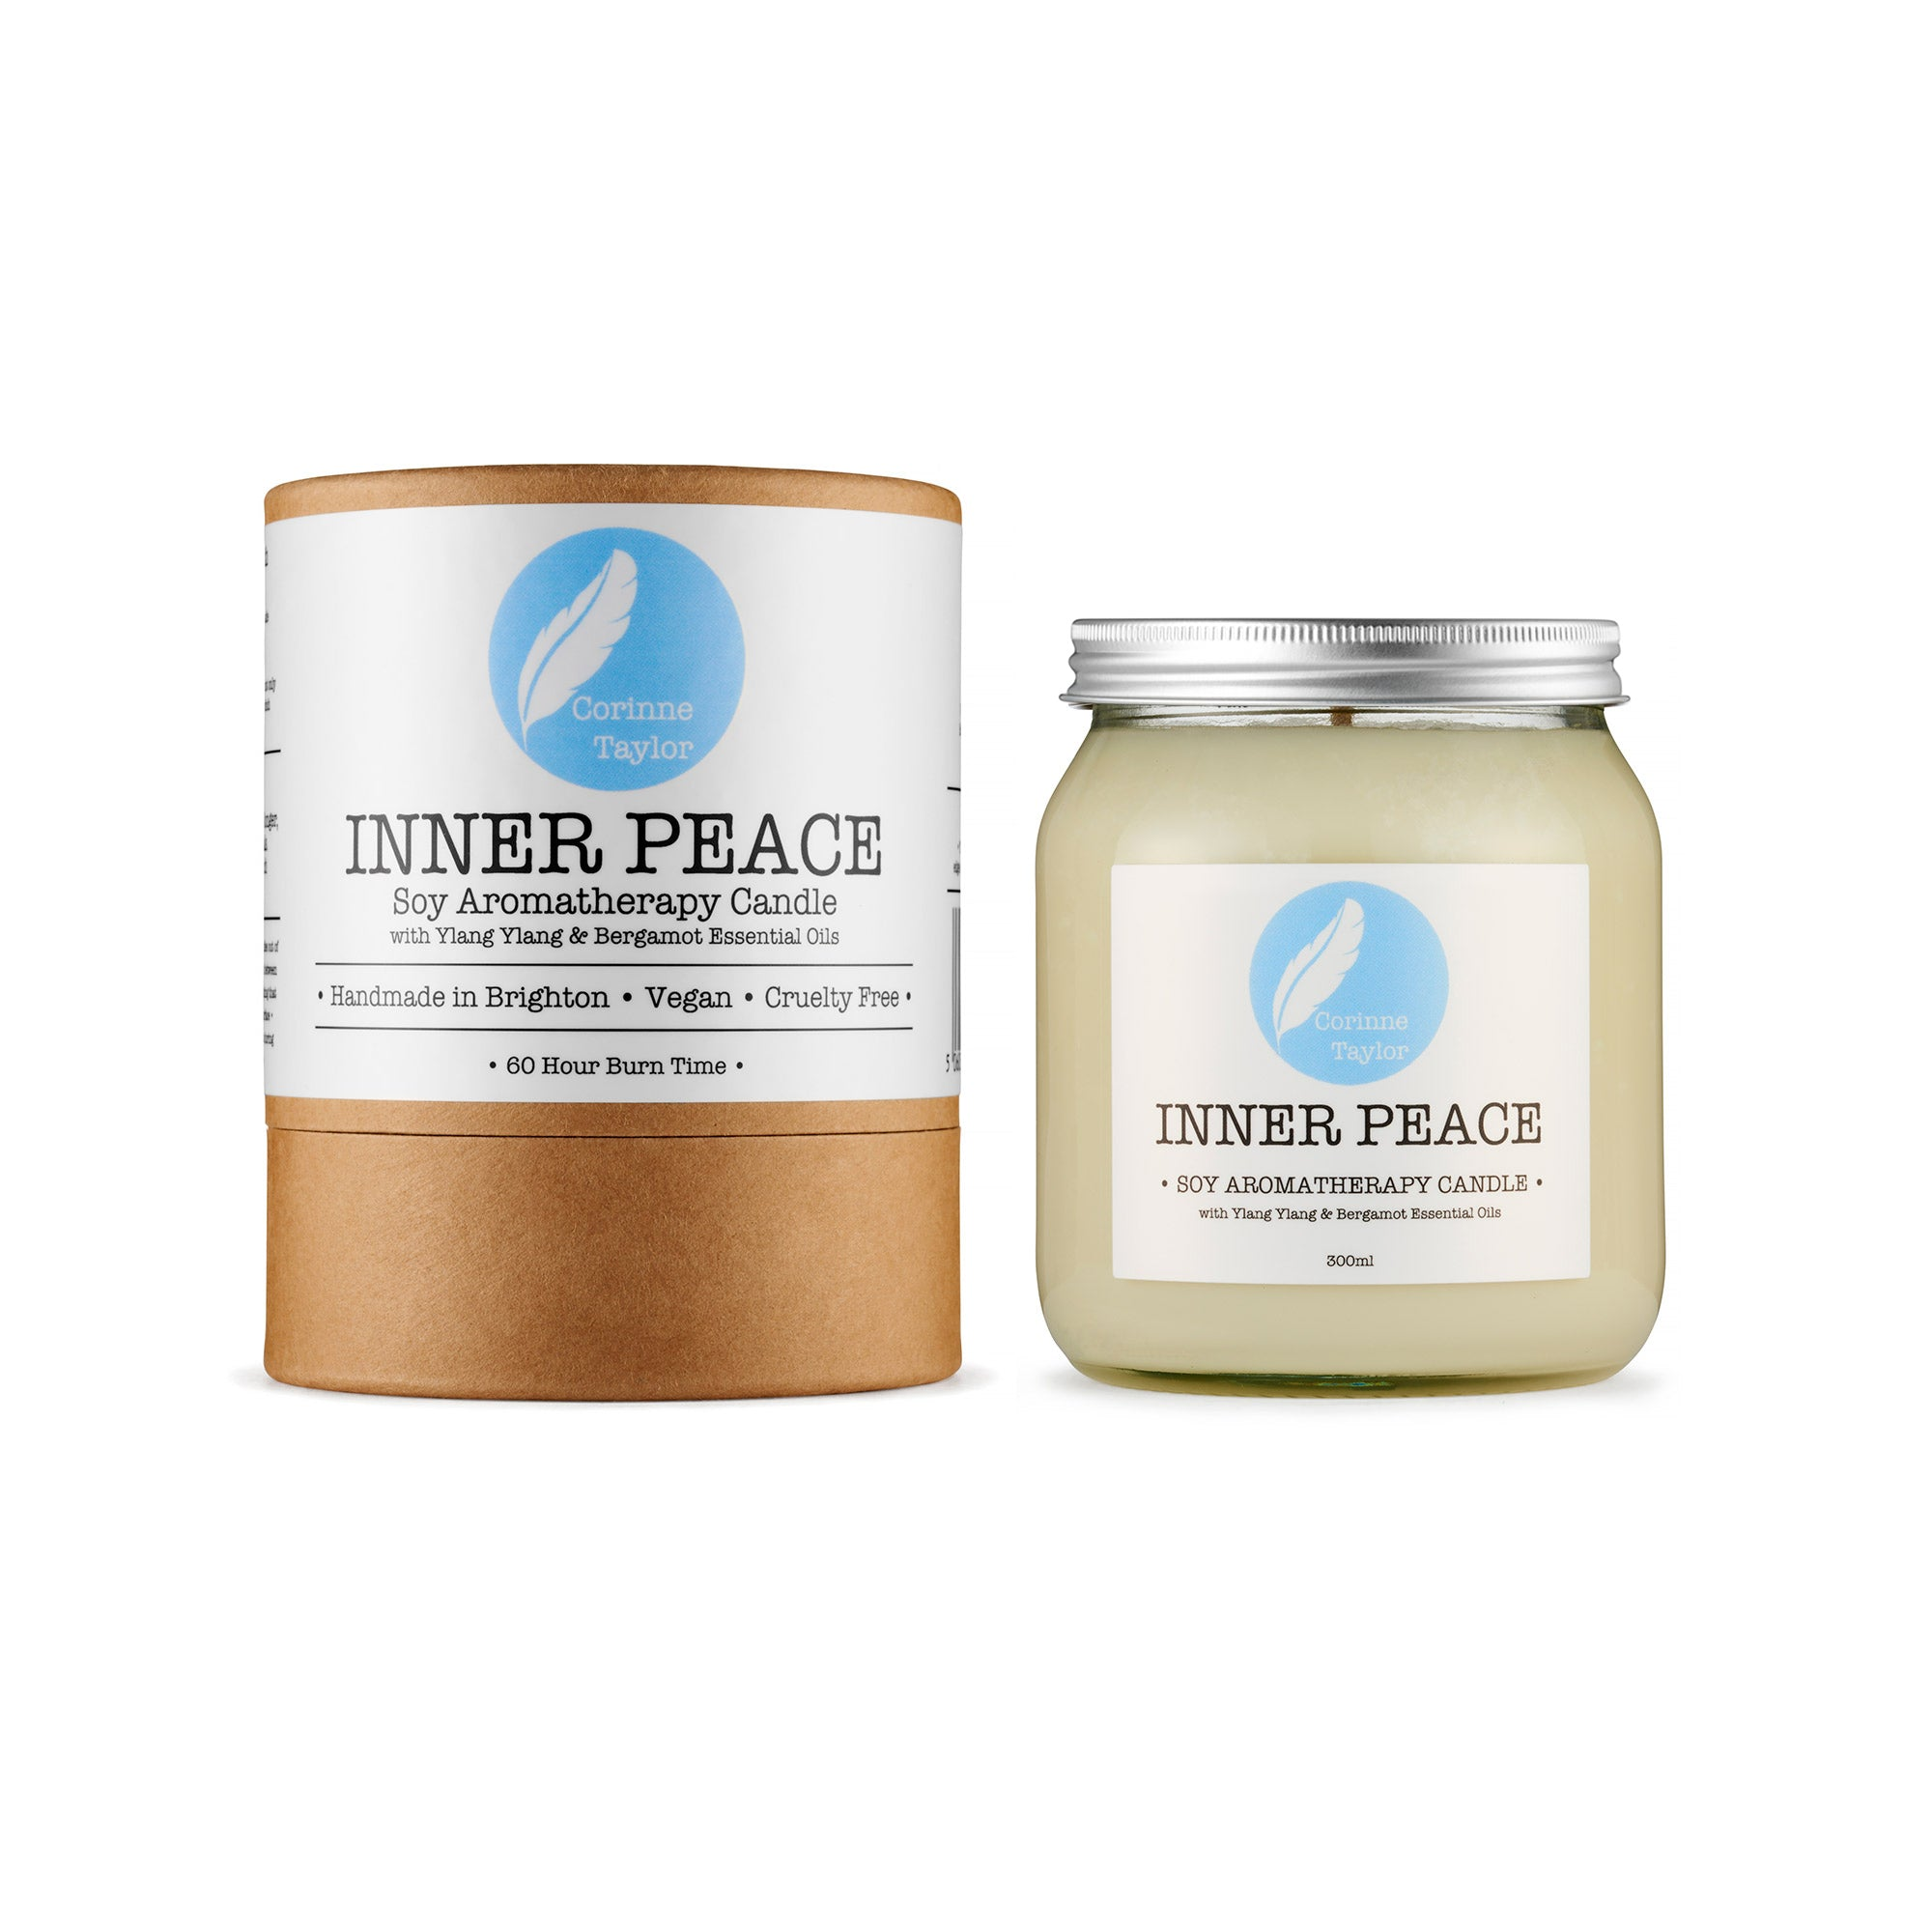 Inner Peace Soy Aromatherapy candle by Corinne Taylor. 100% natural, vegan, plant based, cruelty free. With Ylang Ylang & Bergamot essential oils. A calming, relaxing aroma, rich with floral and citrus notes.